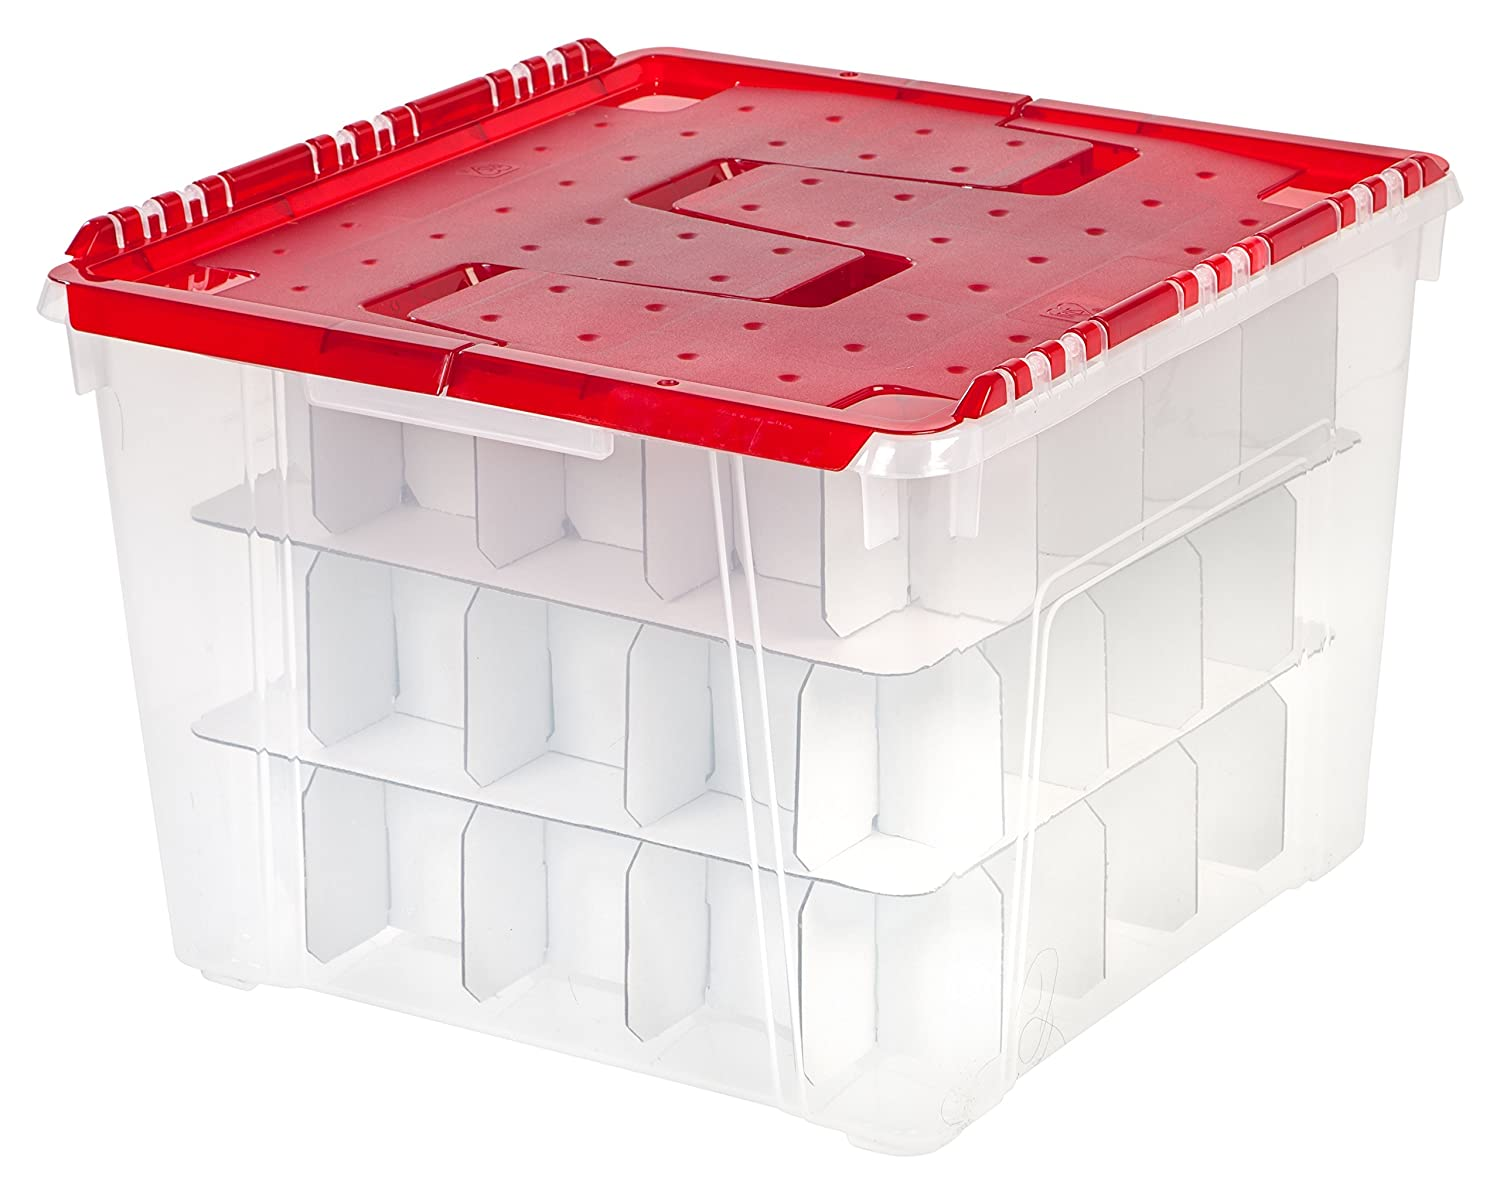 Amazon.com: IRIS Wing Lid Storage Box with Ornament Divider, Red ...